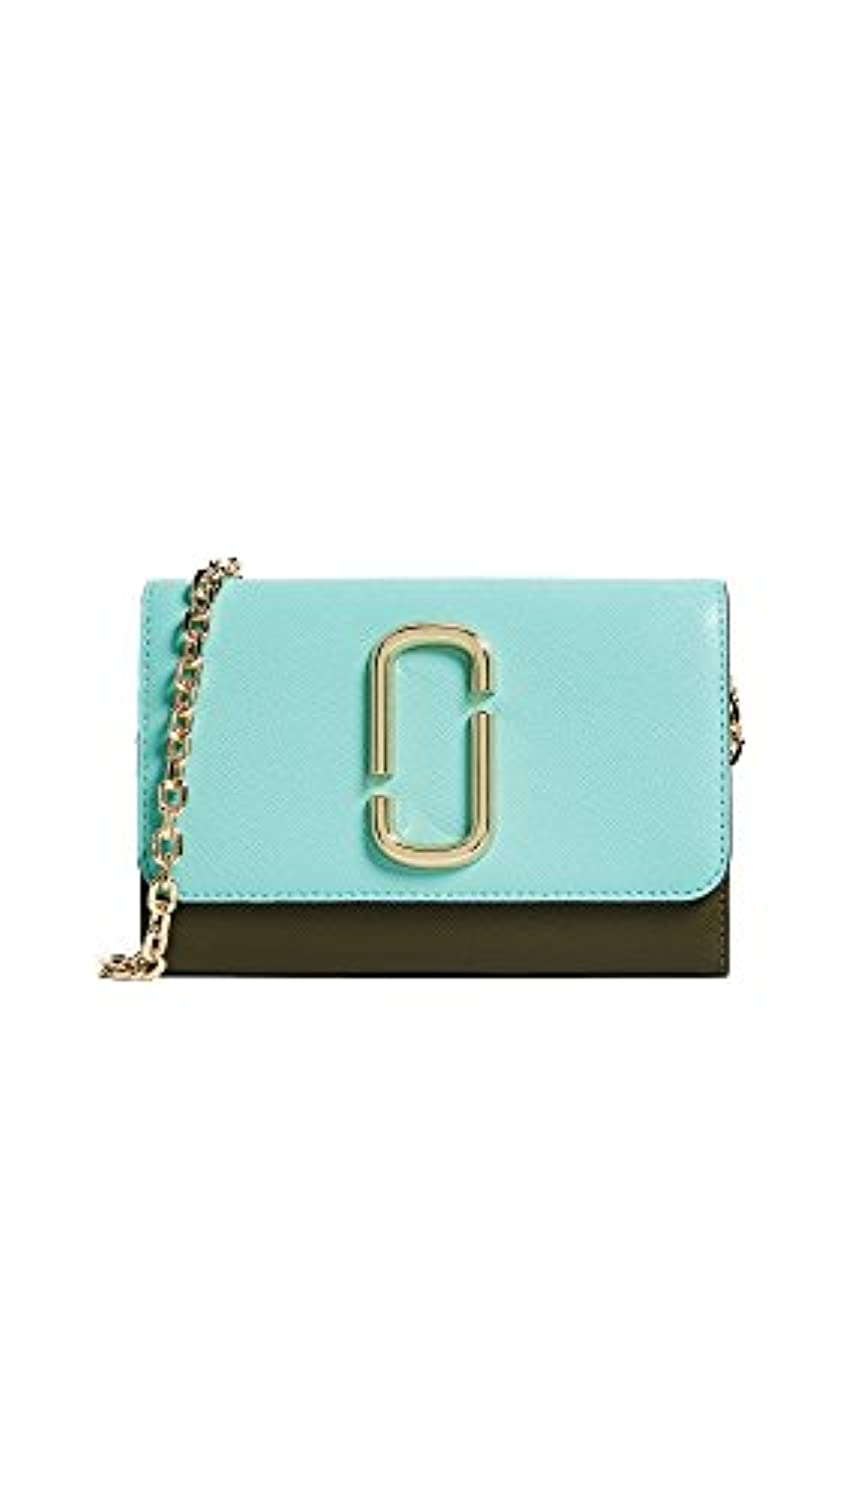 【Marc Jacobs】Snapshot Wallet On Chain カラー:SURF MULTI 【並行輸入品】